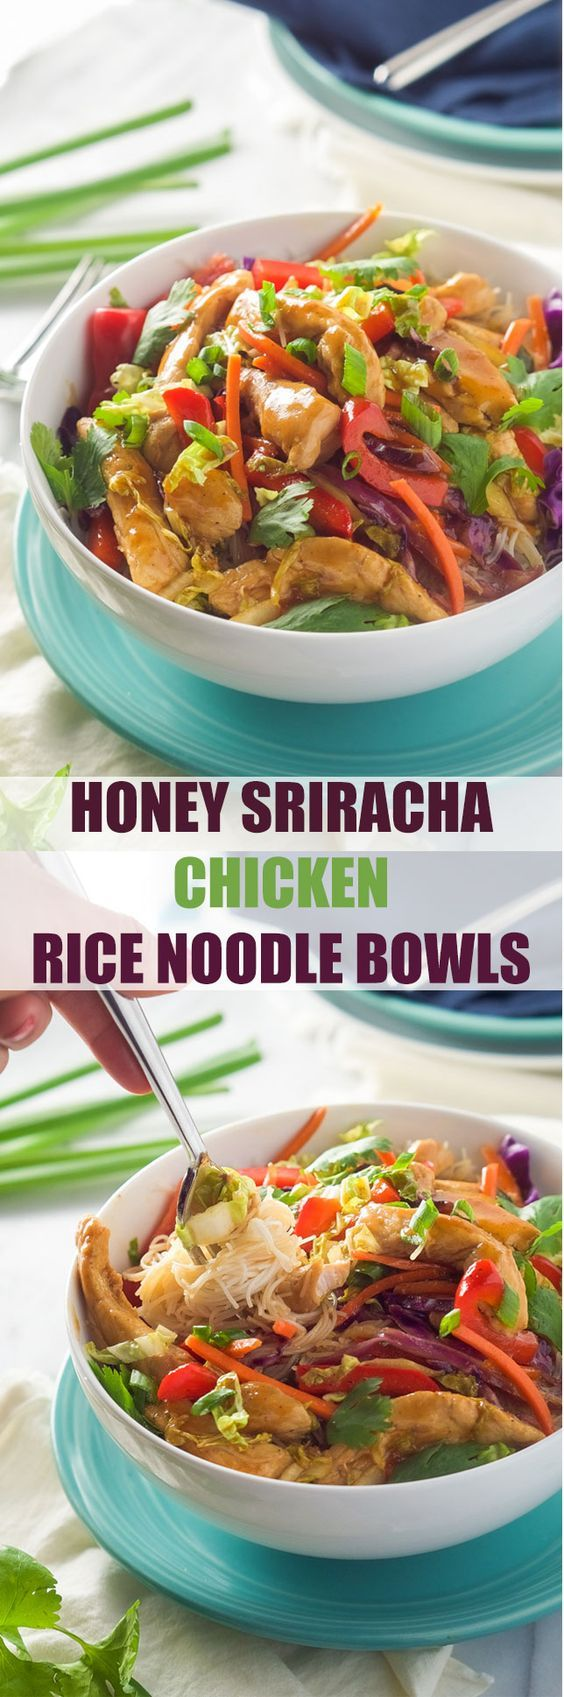 Honey Sriracha Chicken Rice Noodle Bowls are filled with chicken and stir fried vegetables, smothered in a sweet and spicy sauce; all over a big bowl of rice noodles! Click through for recipe!